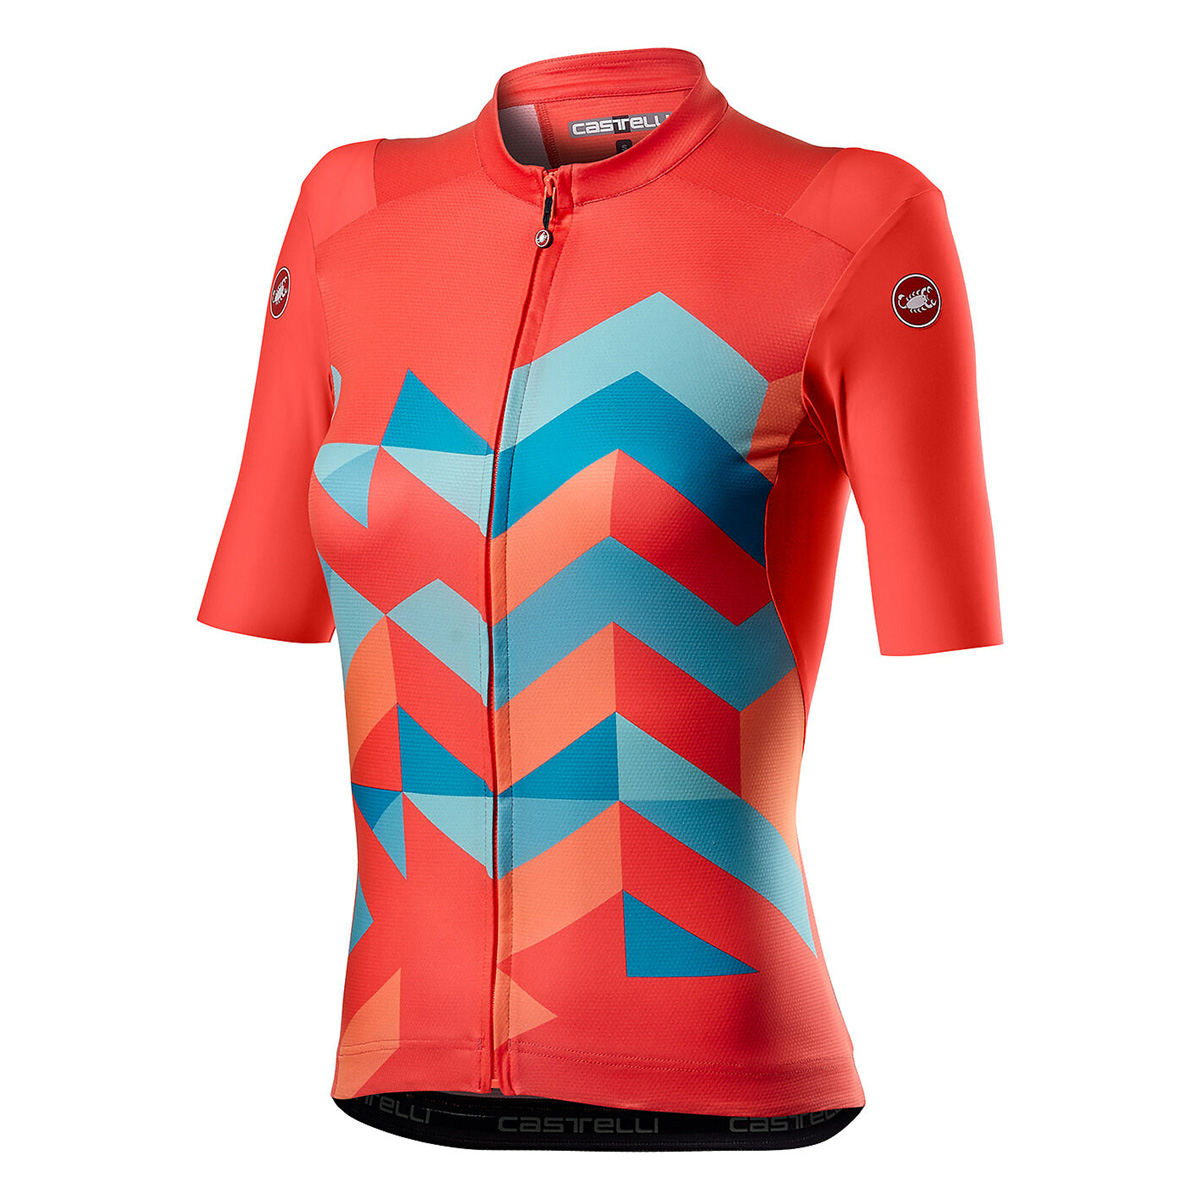 MAILLOT CASTELLI UNLIMITED FEMME